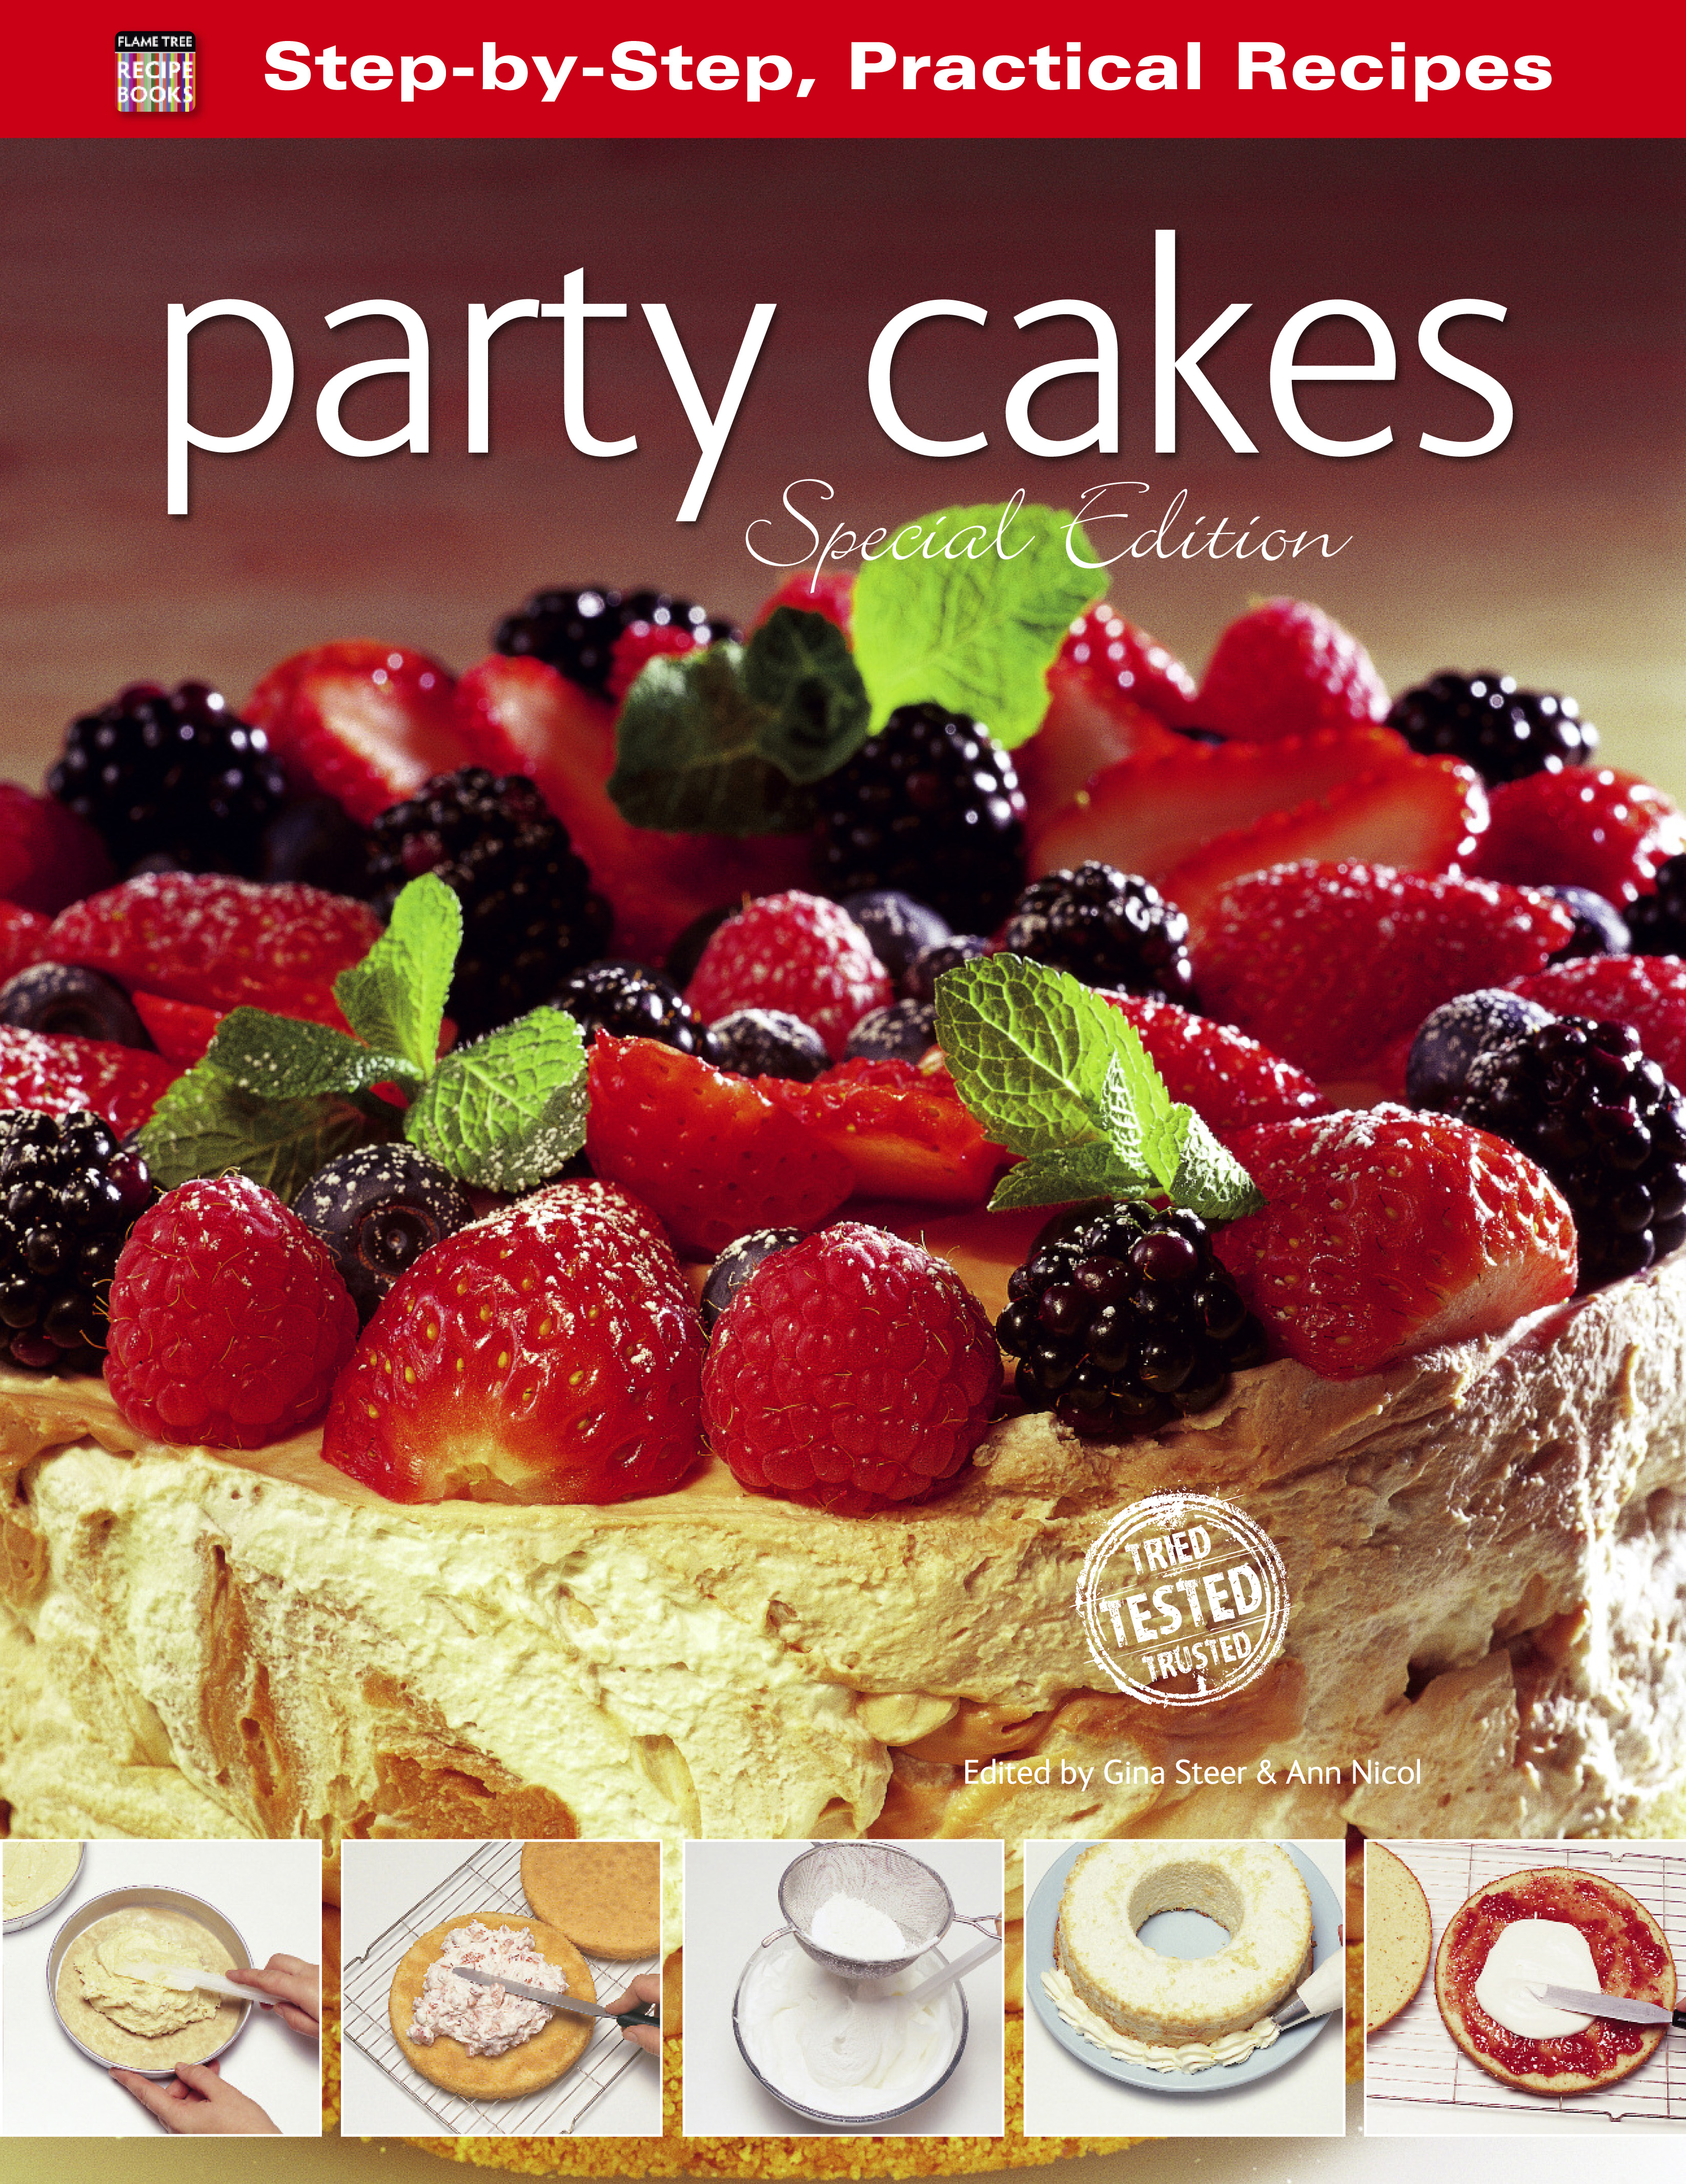 Cakes, simple, quick and easy recipes